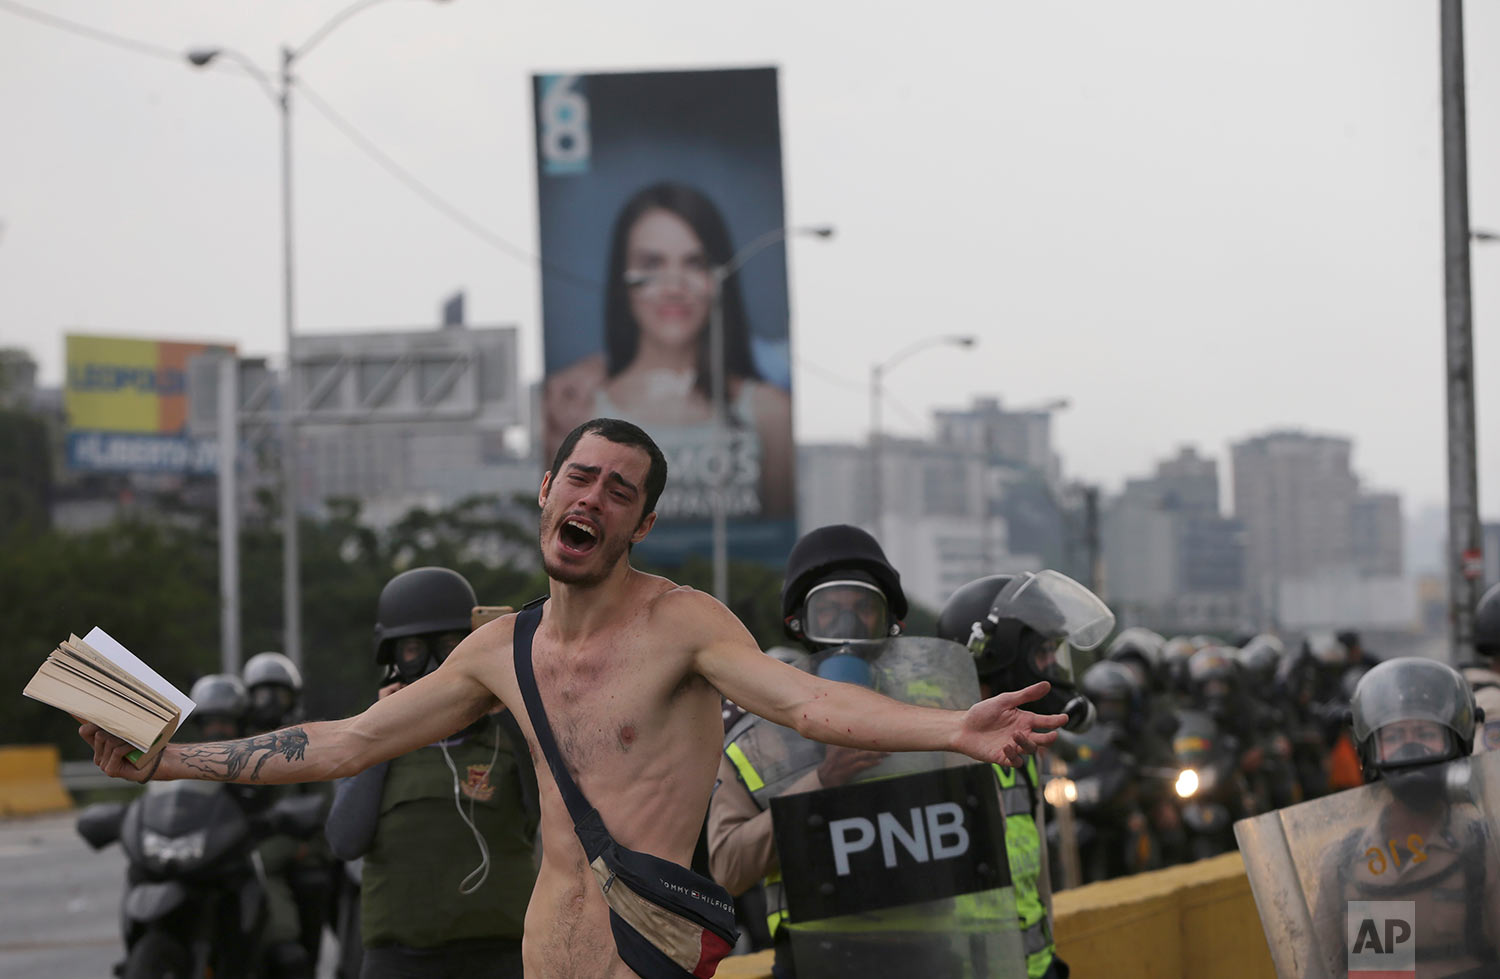 An anti-government protester holds a Bible under the watch of riot police during a march in Caracas, Venezuela, Thursday, April 20, 2017. Tens of thousands of protesters asking for the resignation of President Nicolas Maduro flooded the streets the day after three were killed and hundreds arrested in the biggest anti-government demonstrations in years. (AP Photo/Fernando Llano)